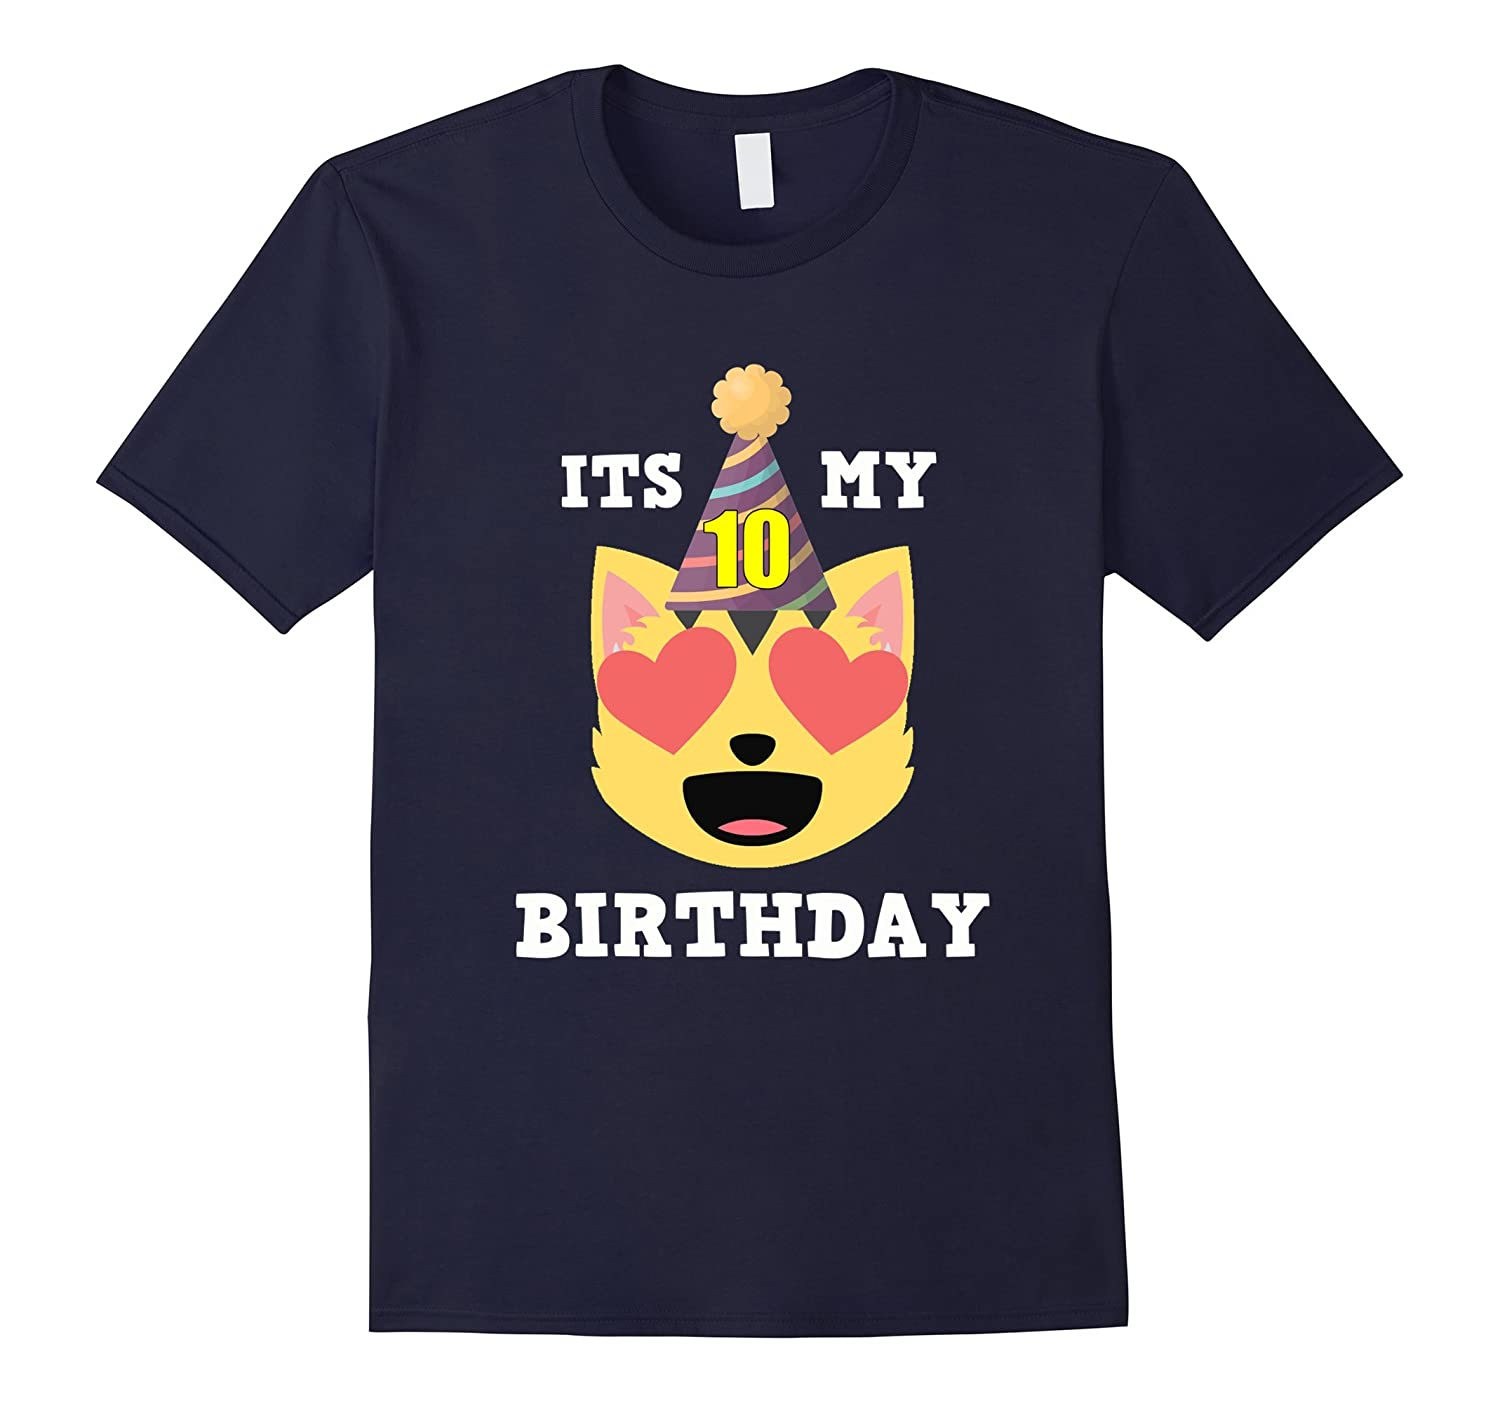 10th Birthday T-Shirt Heart Eyes Cat Emoji Birthday Shirt-TH